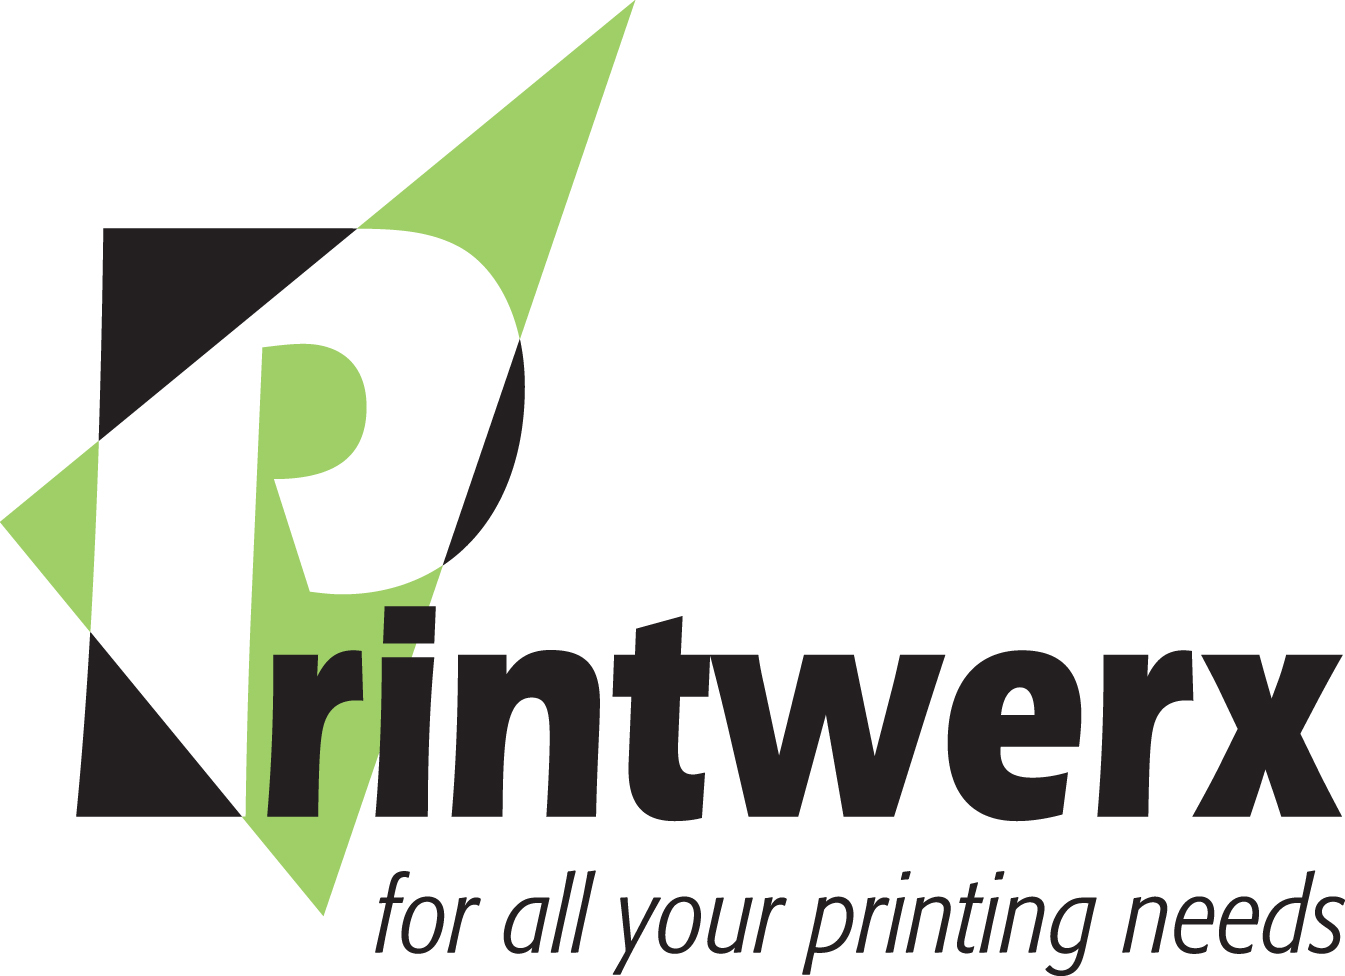 Alice Woodard - Alice Woodard is the owner of Printwerx. She has been in the printing industry since the 1984 and started Printwerx in 2003. She enjoys the creative side of the printing industry and helping her clients run and market their business through print. When Alice is not busy running Printwerx, she is spending time with her family, traveling, baking or just enjoying life.https://printwerxaz.com/